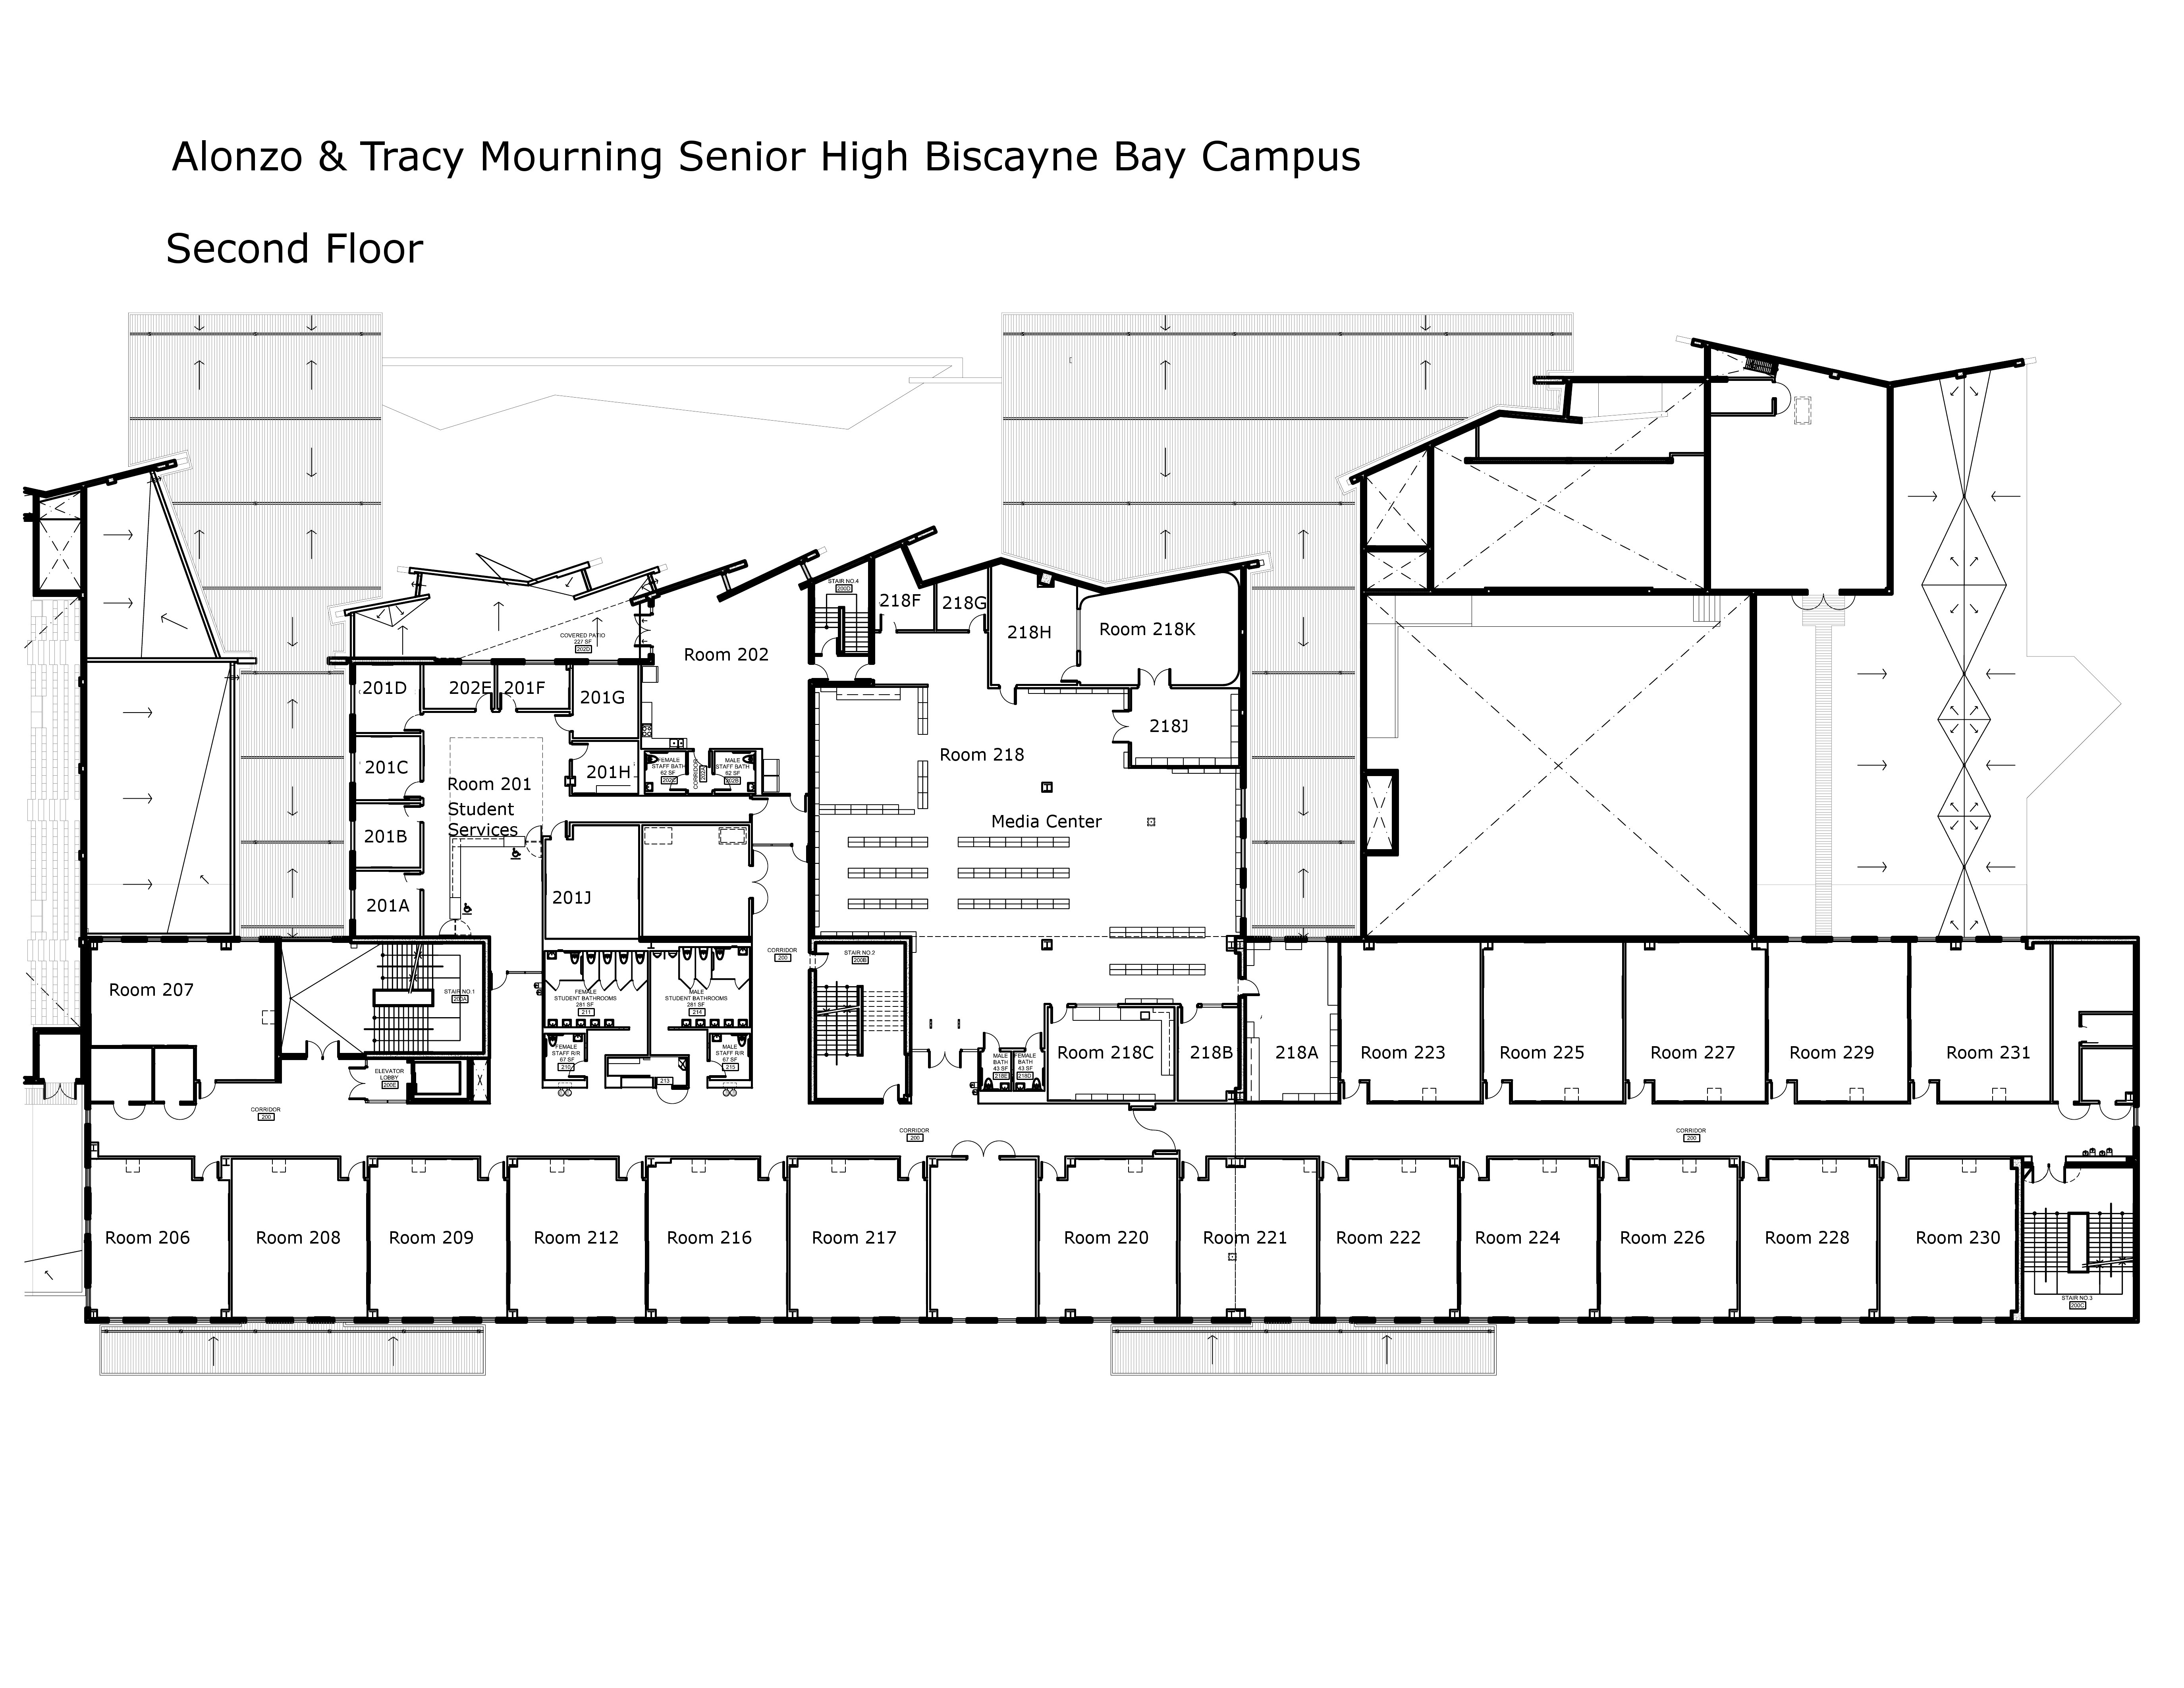 Biscayne Bay Campus Map.Alonzo Tracy Mourning Sr H Biscayne Bay Campus Floor Maps